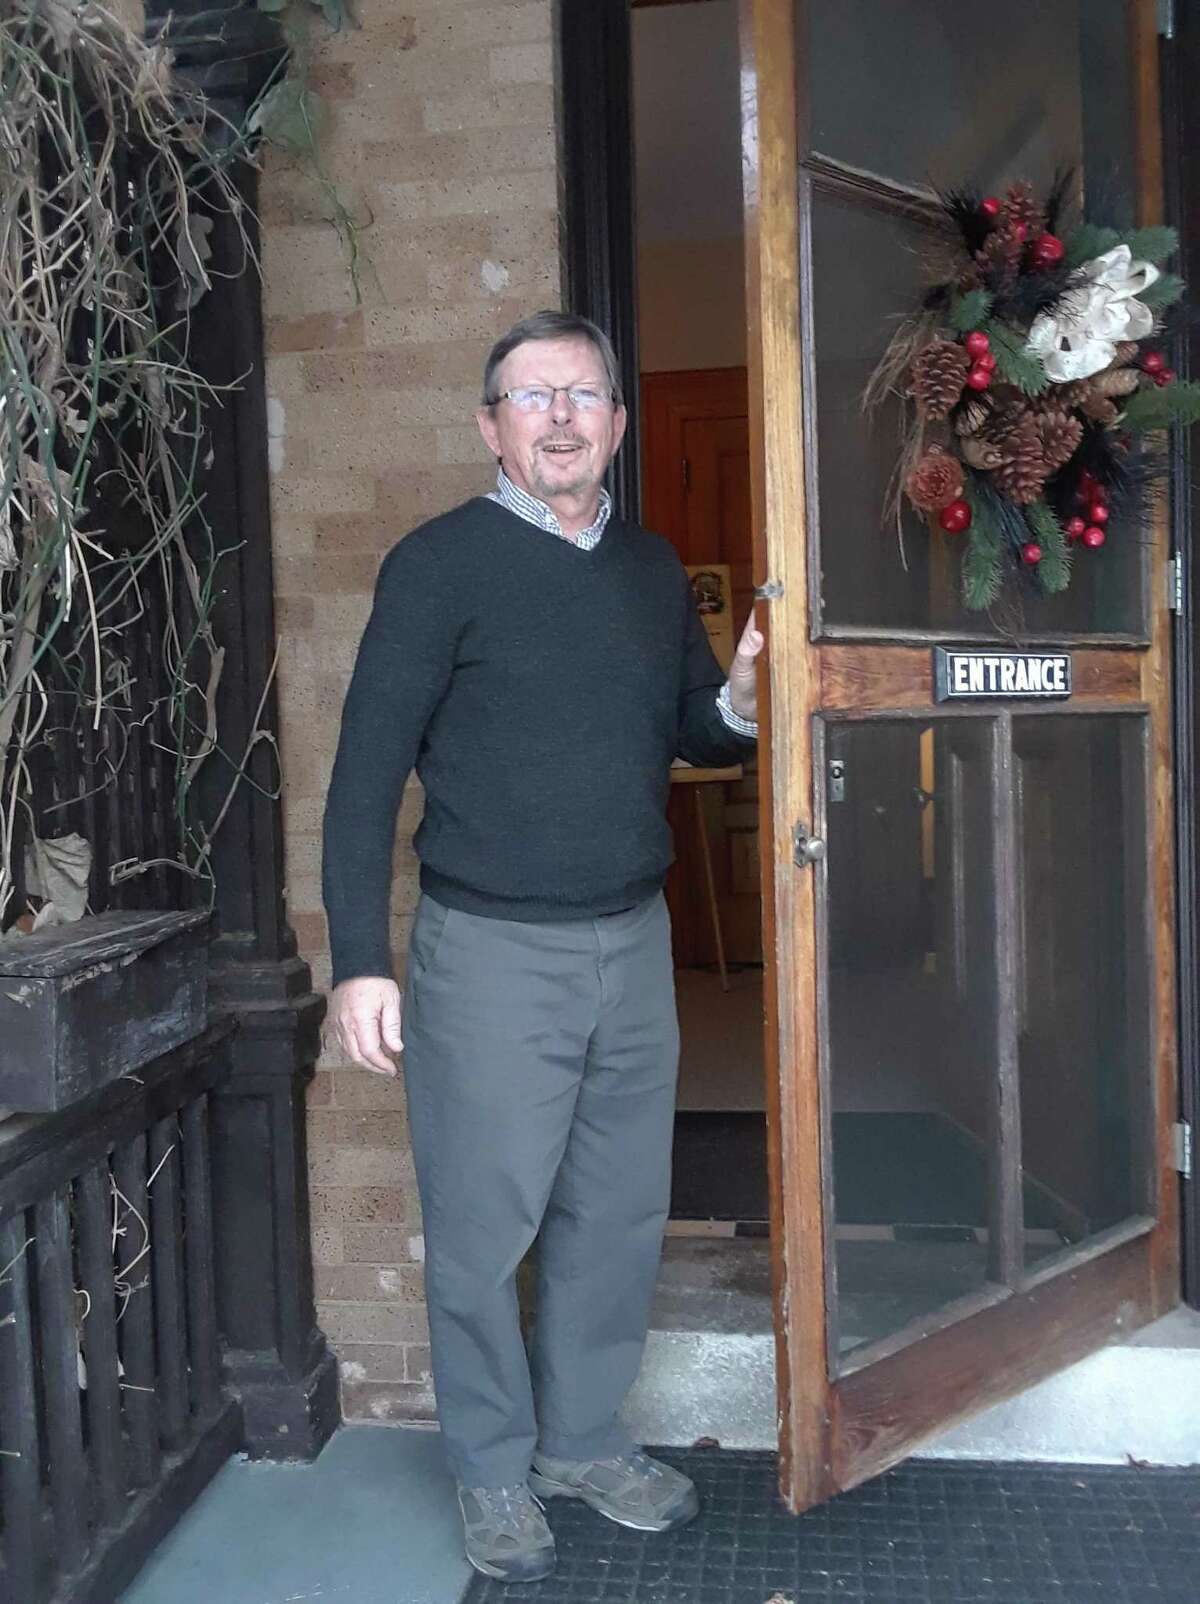 Torrington Historical Society Executive Director Mark McEachern, shown here at the Hotchkiss-Fyler House museum in 2019, is presenting a talk on Torrington history in Cornwall Oct. 10.